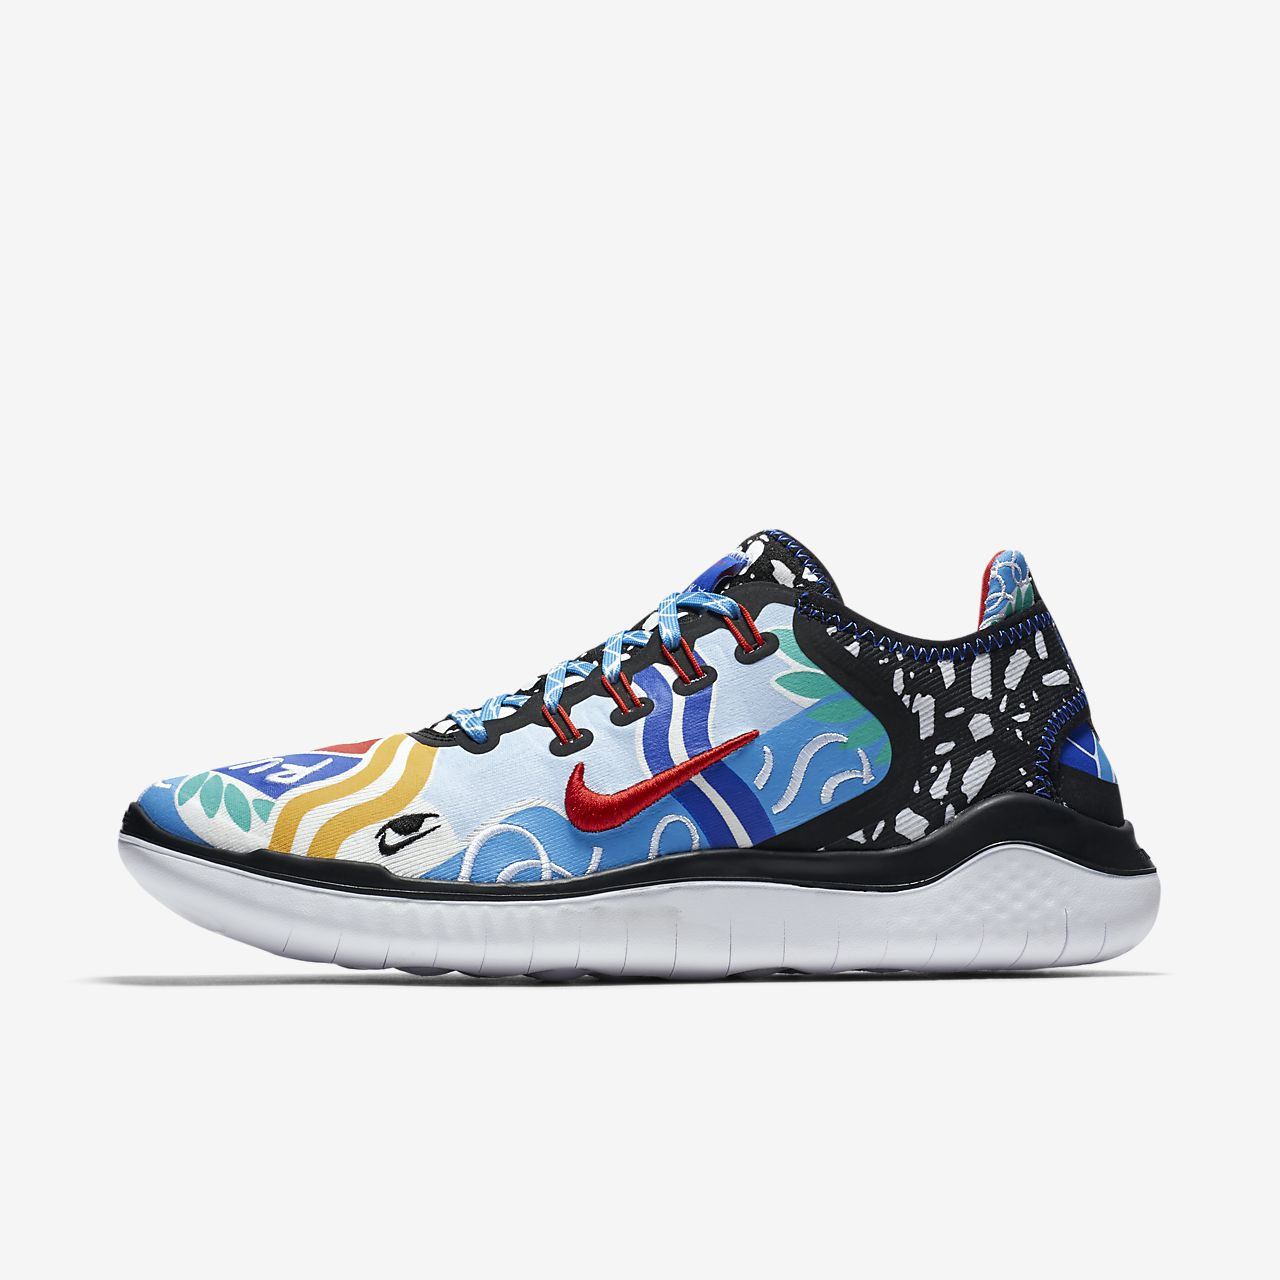 Chaussures Nike Free Run Course 2018 Hommes cycL9A